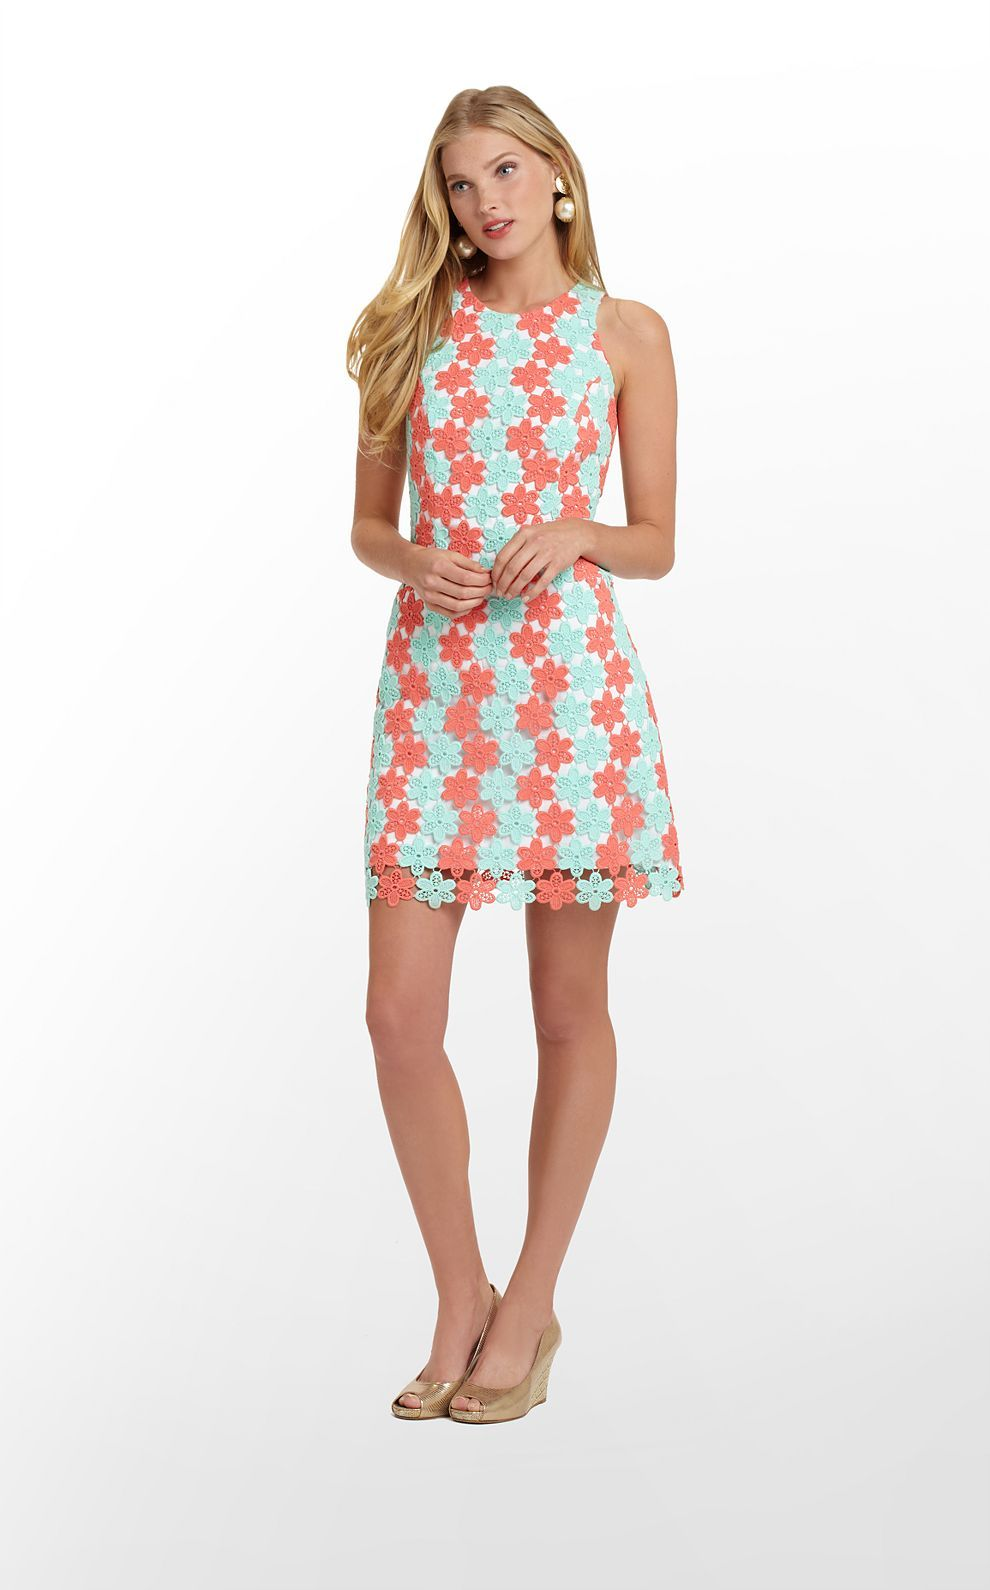 Lilly Pulitzer Dress Sale